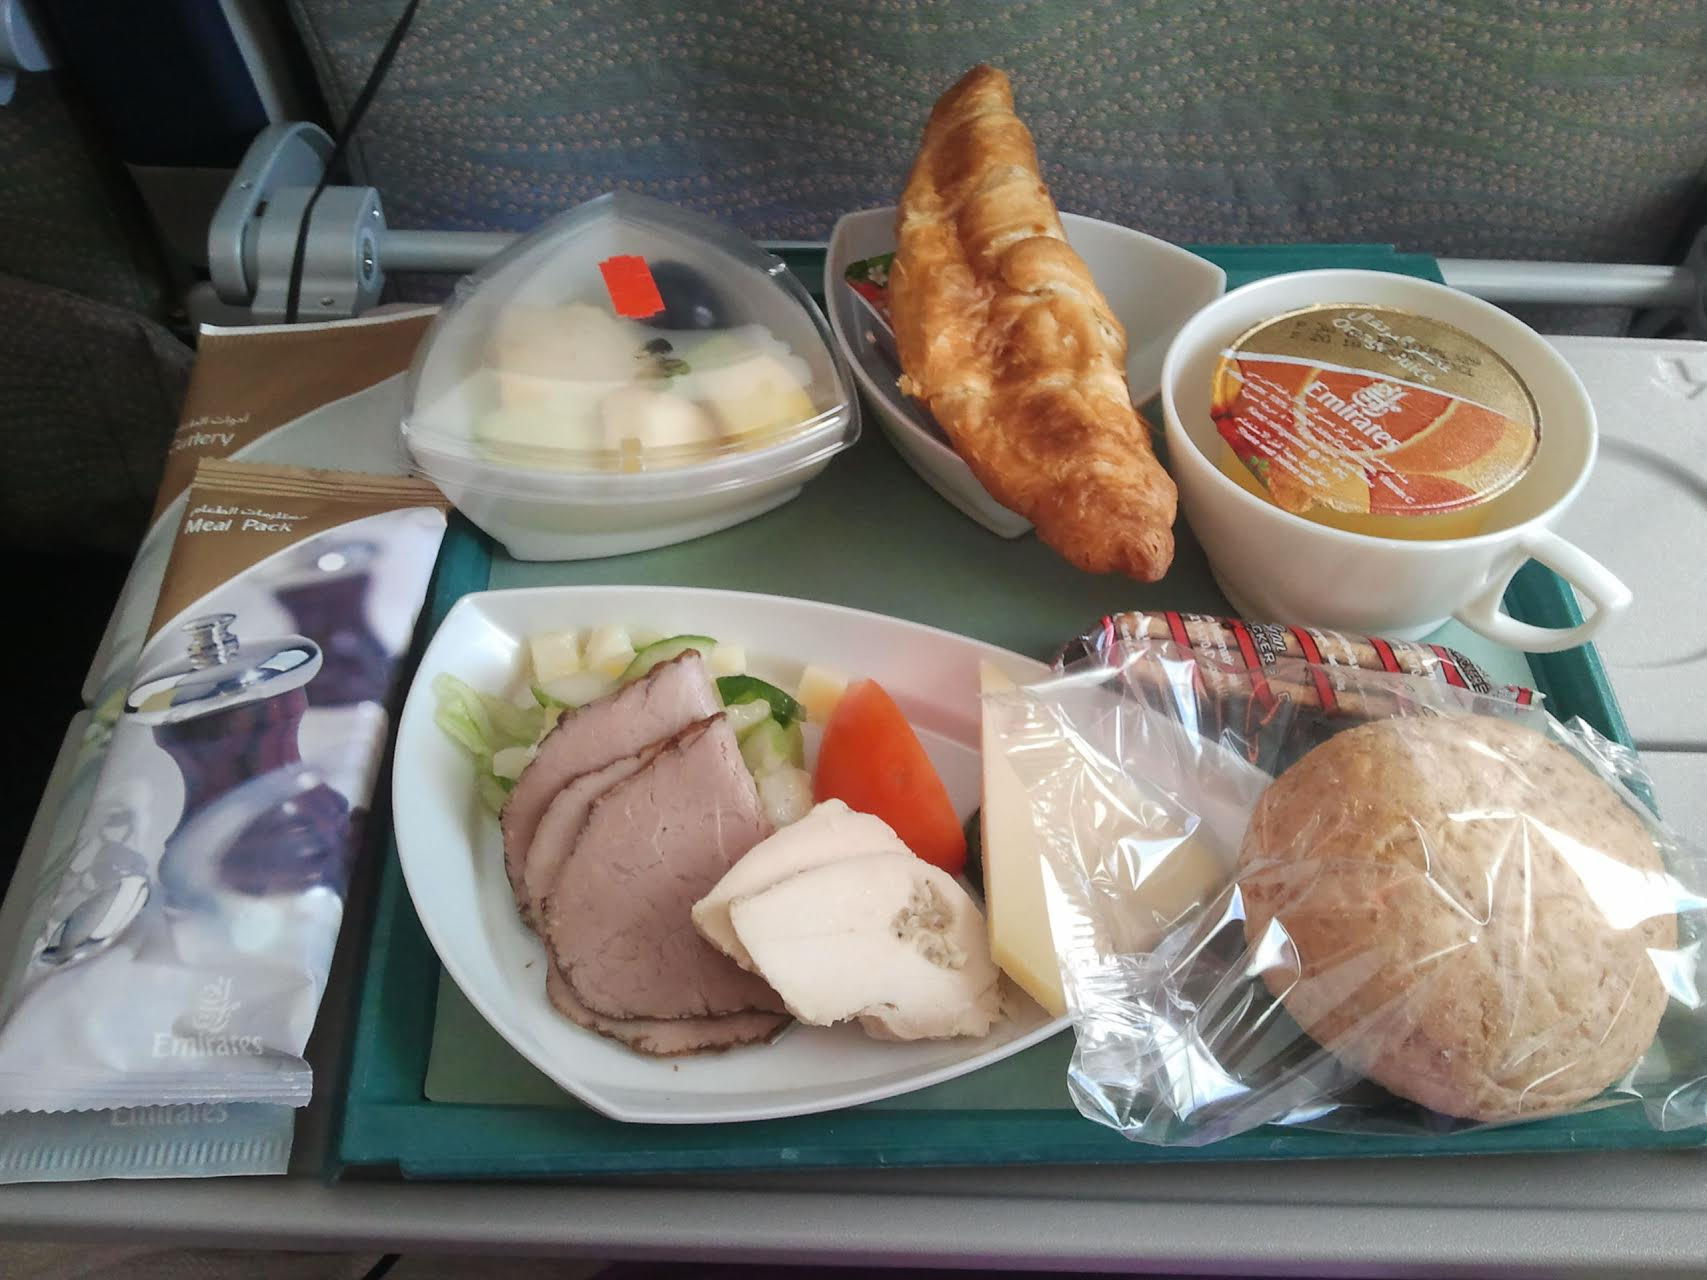 Plastic-wrapped food on an Emirates flight. Photo by Nicolas Delaunay.